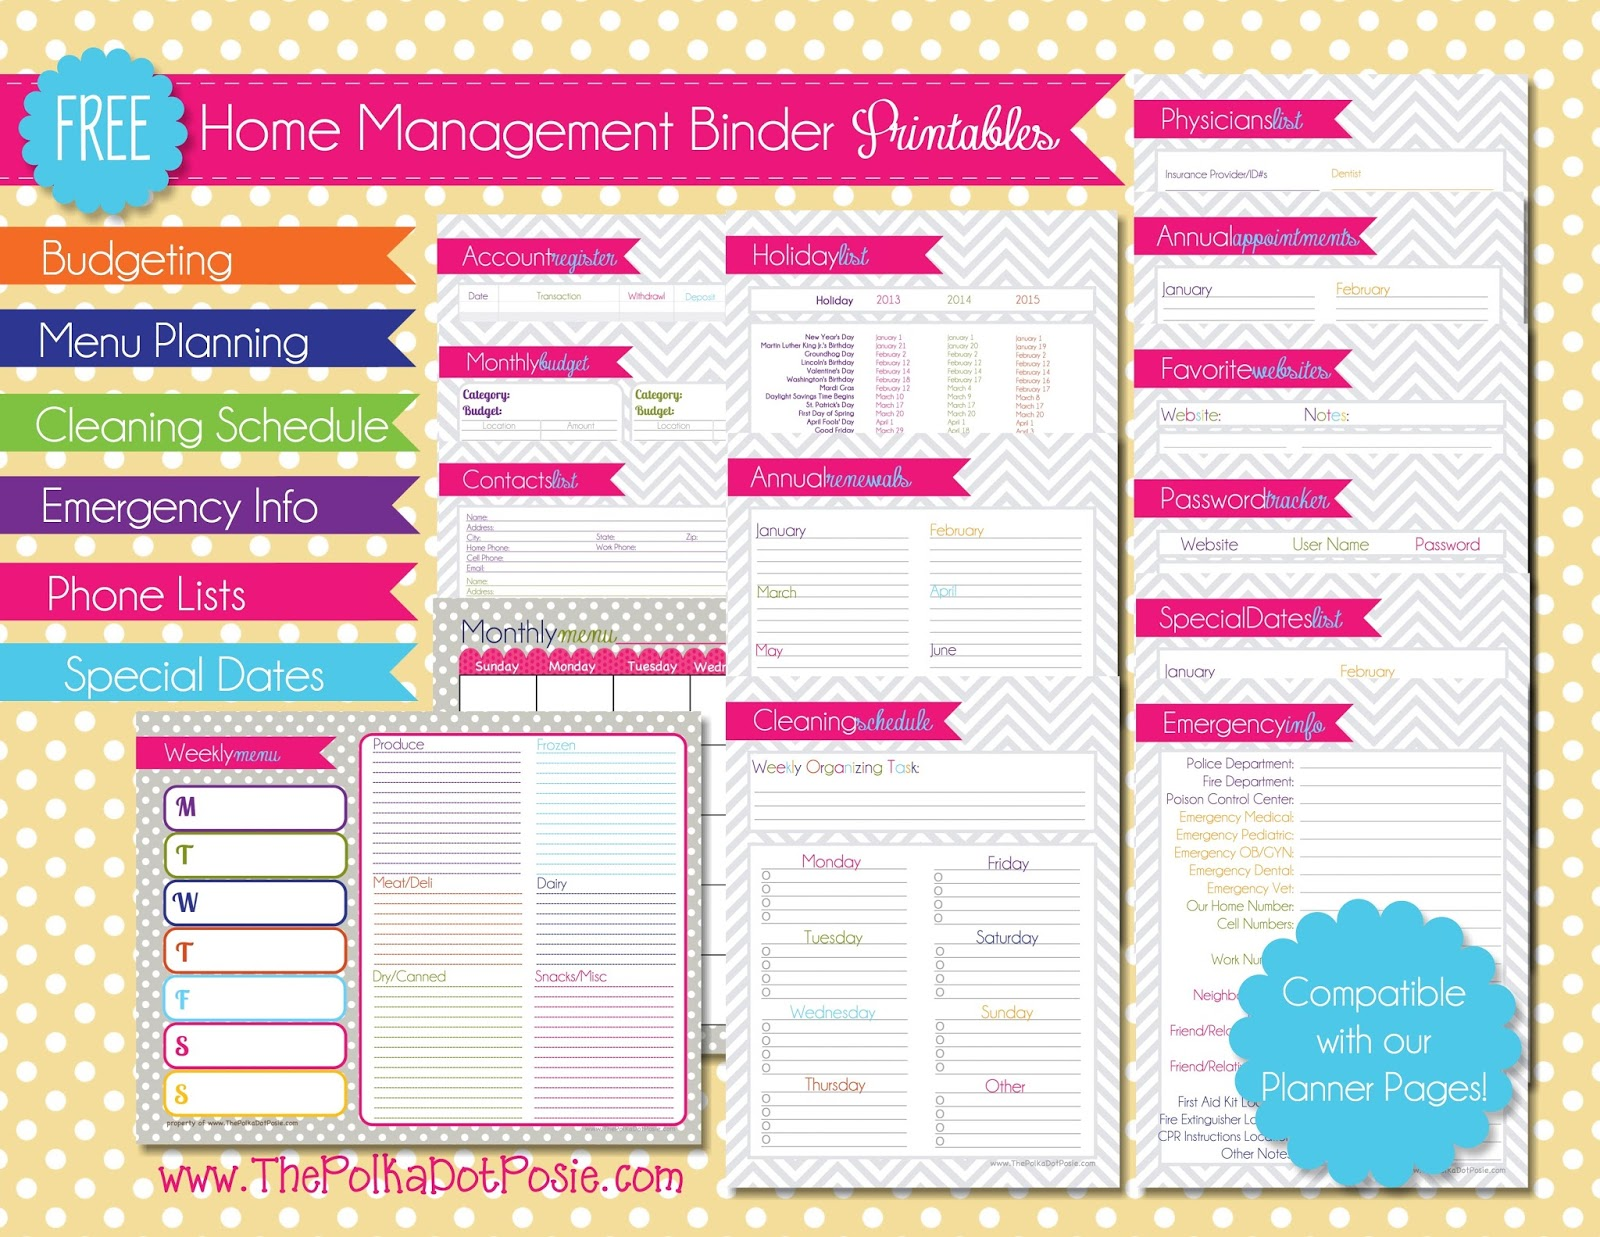 free printables for home management binder www